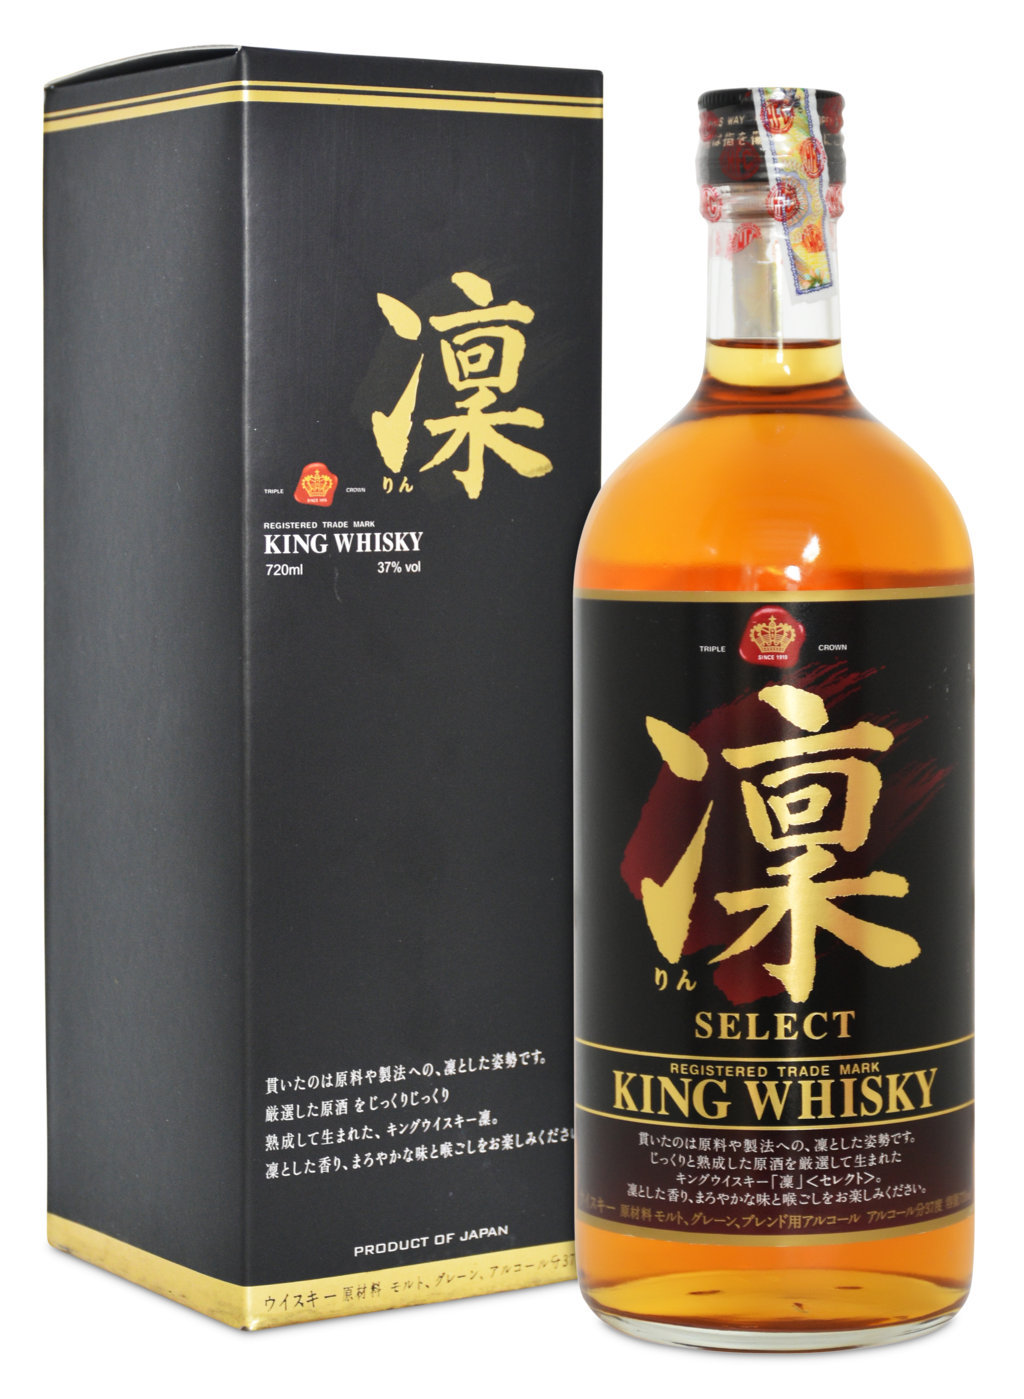 king-whisky-fileminimizer--1522136036.JPG